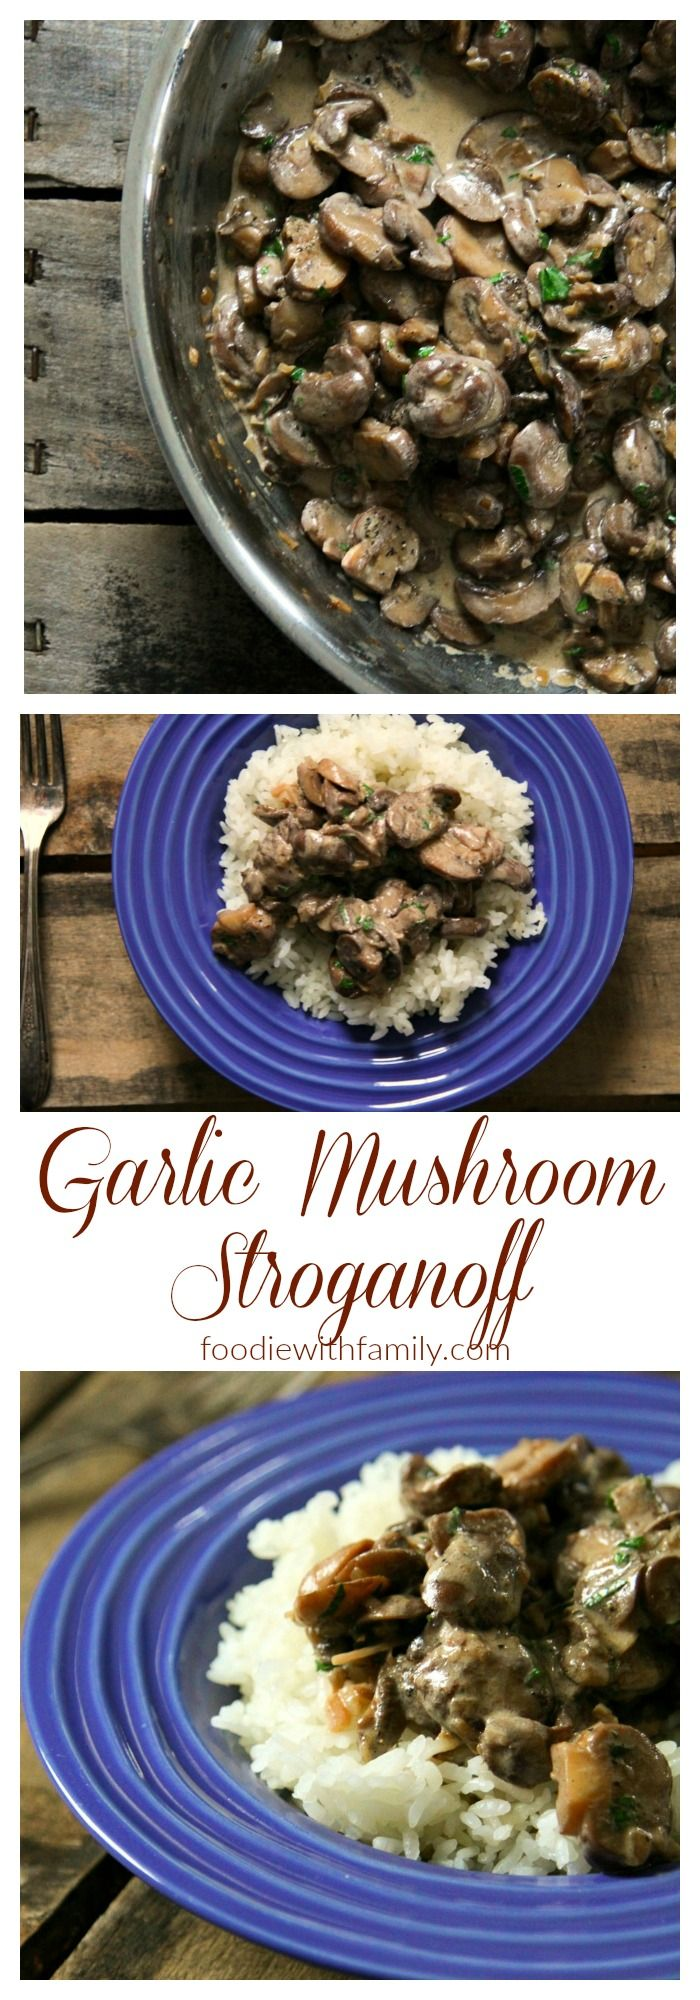 Garlic Mushroom Stroganoff is creamy, hearty, and full of umami, but won't weigh you down. Enjoy this as a vegetarian main dish, or serve with roasted beef, ham, or venison.